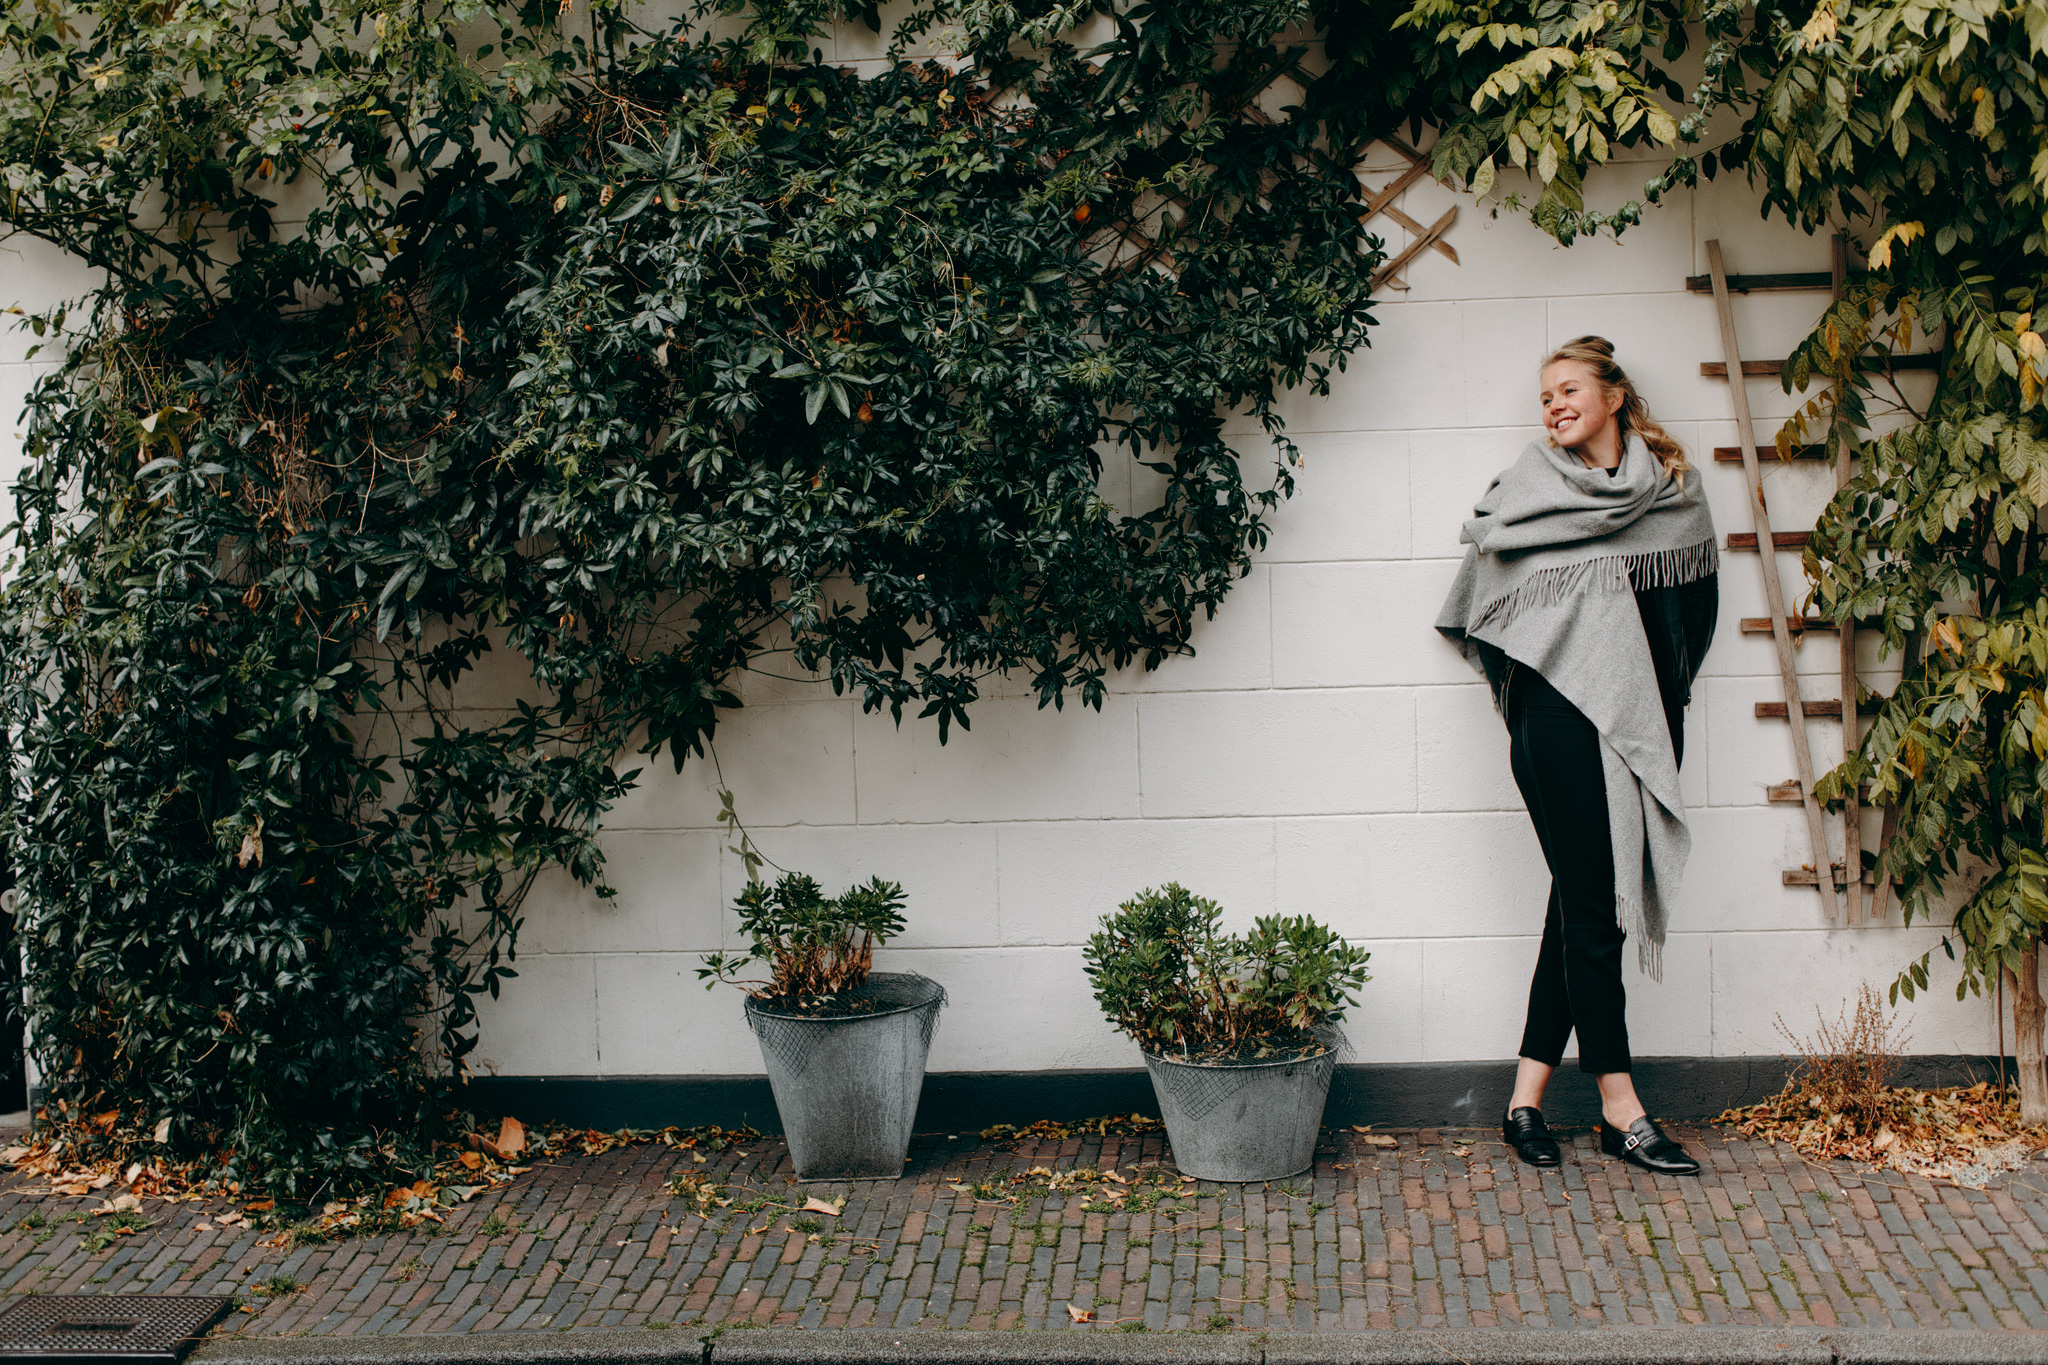 Portrait of Marieke in front of wall with plants